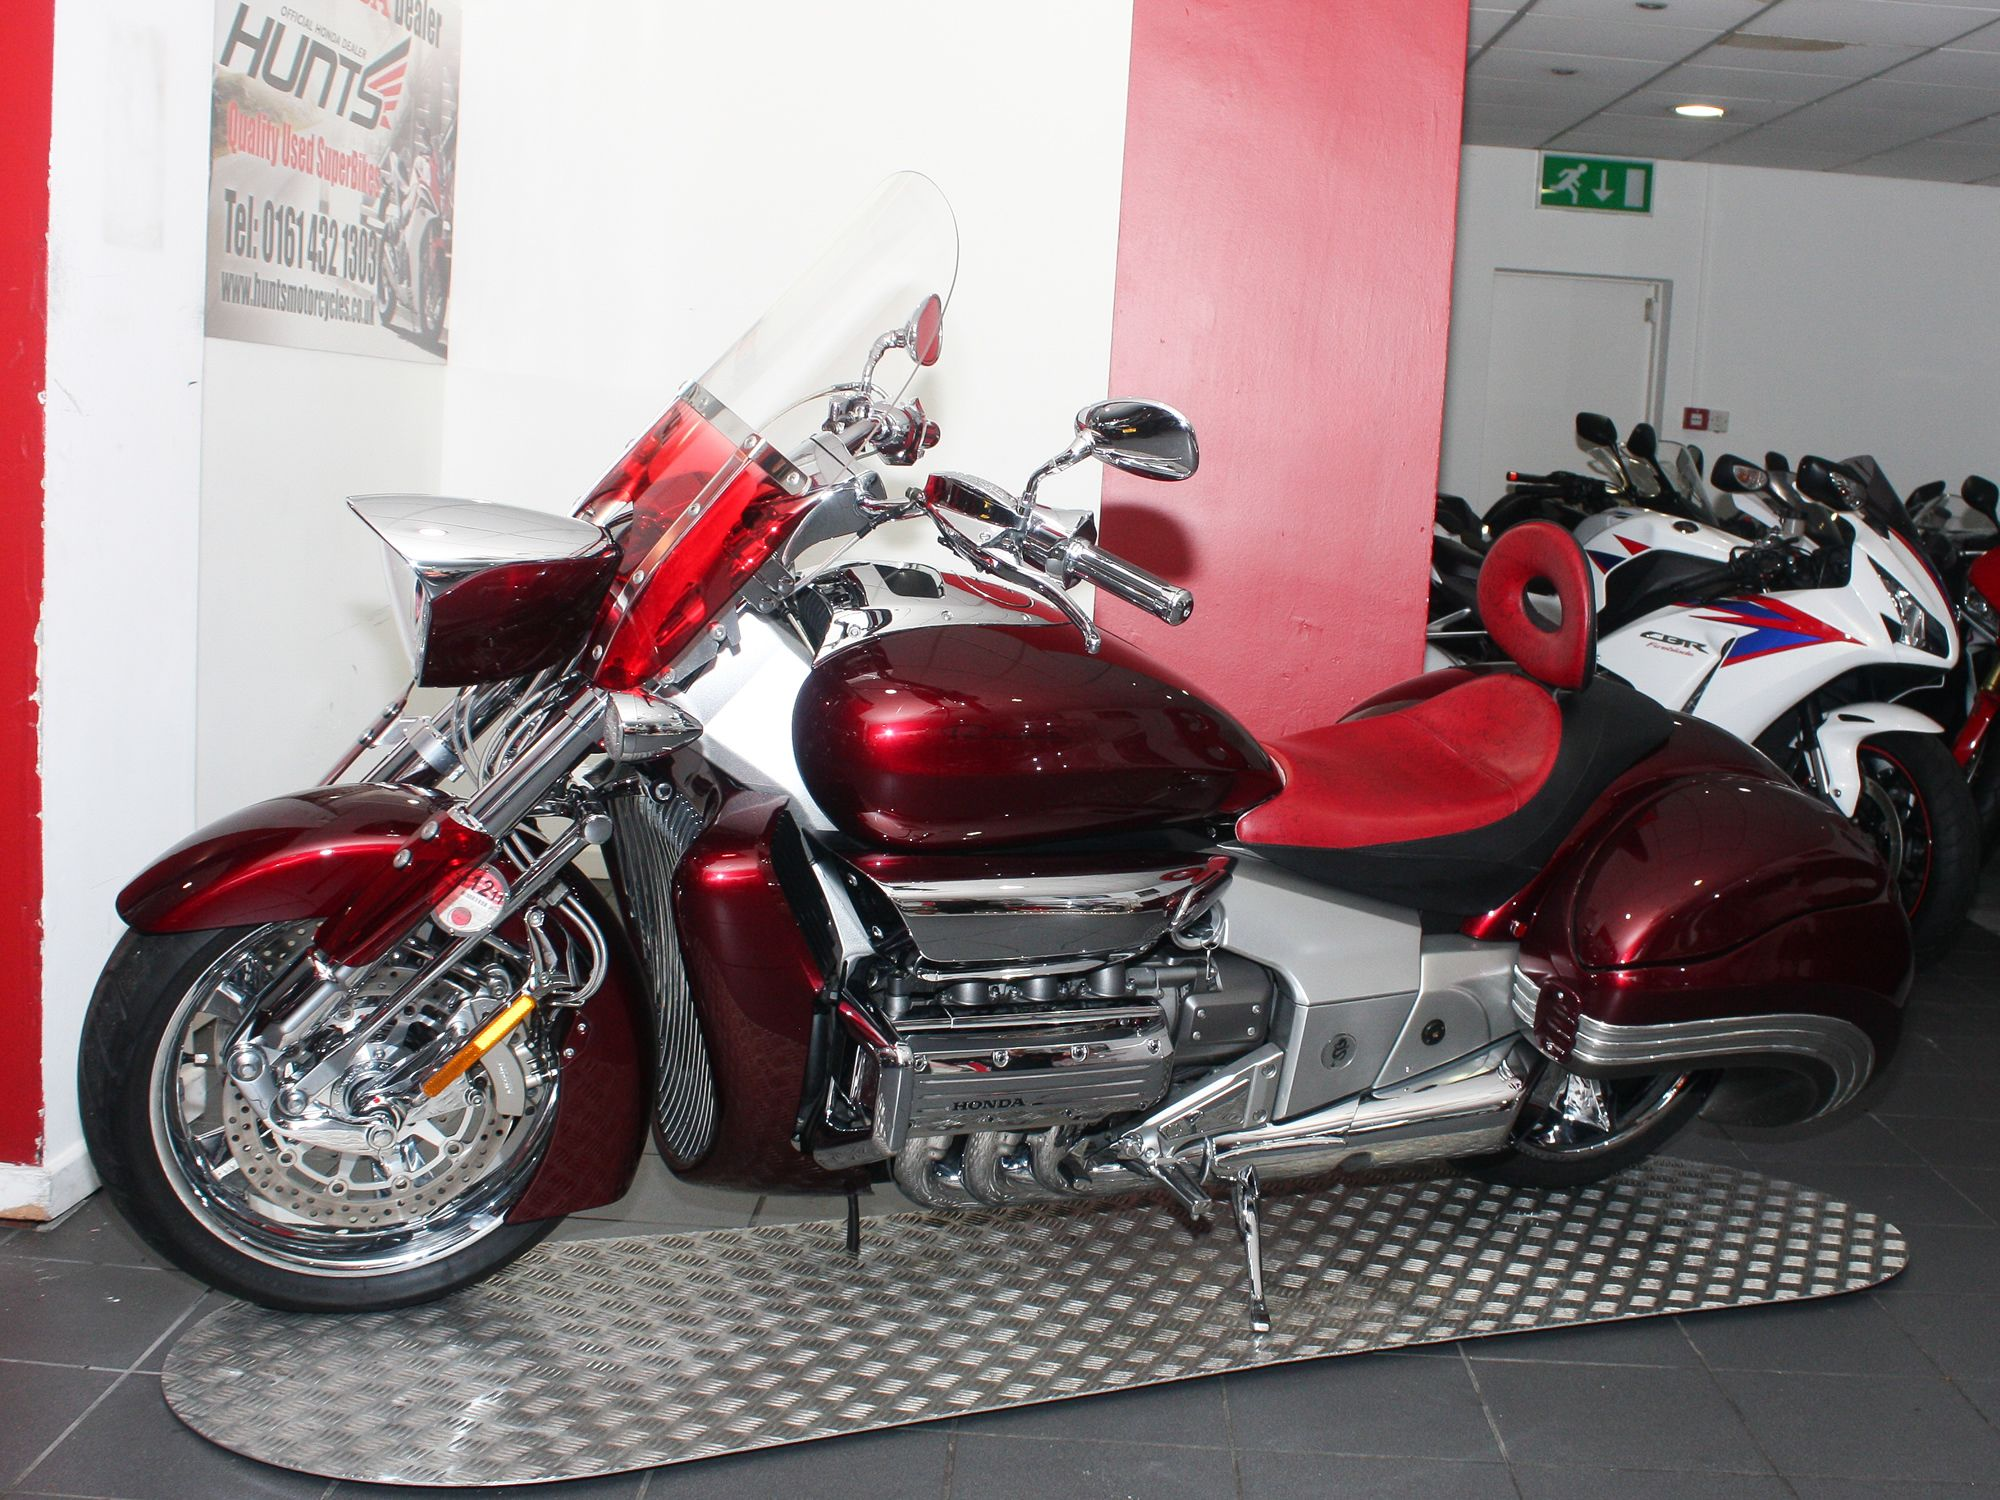 Honda NRX1800 Valkyrie Rune Finished in Bloodstone Candy Apple Red and  complete with Honda chrome kit, touring windscreen, wind deflectors, Corbin  seat with ...